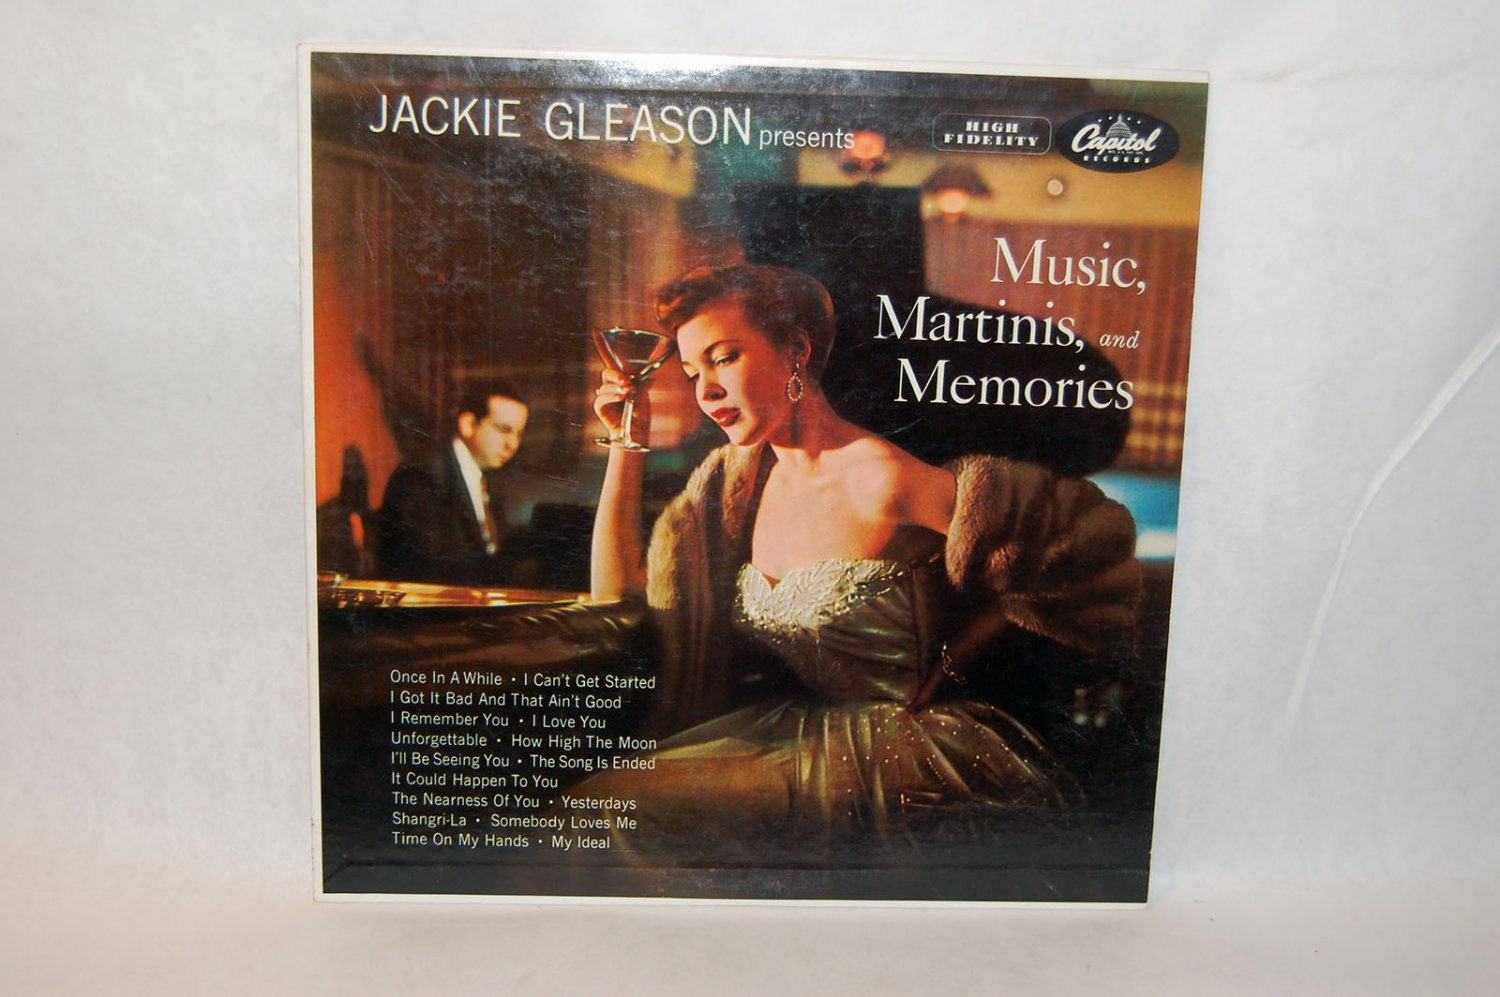 "JACKIE GLEASON PRESENTS Music, Martinis, and Memories 12"" Vinyl LP Capitol"